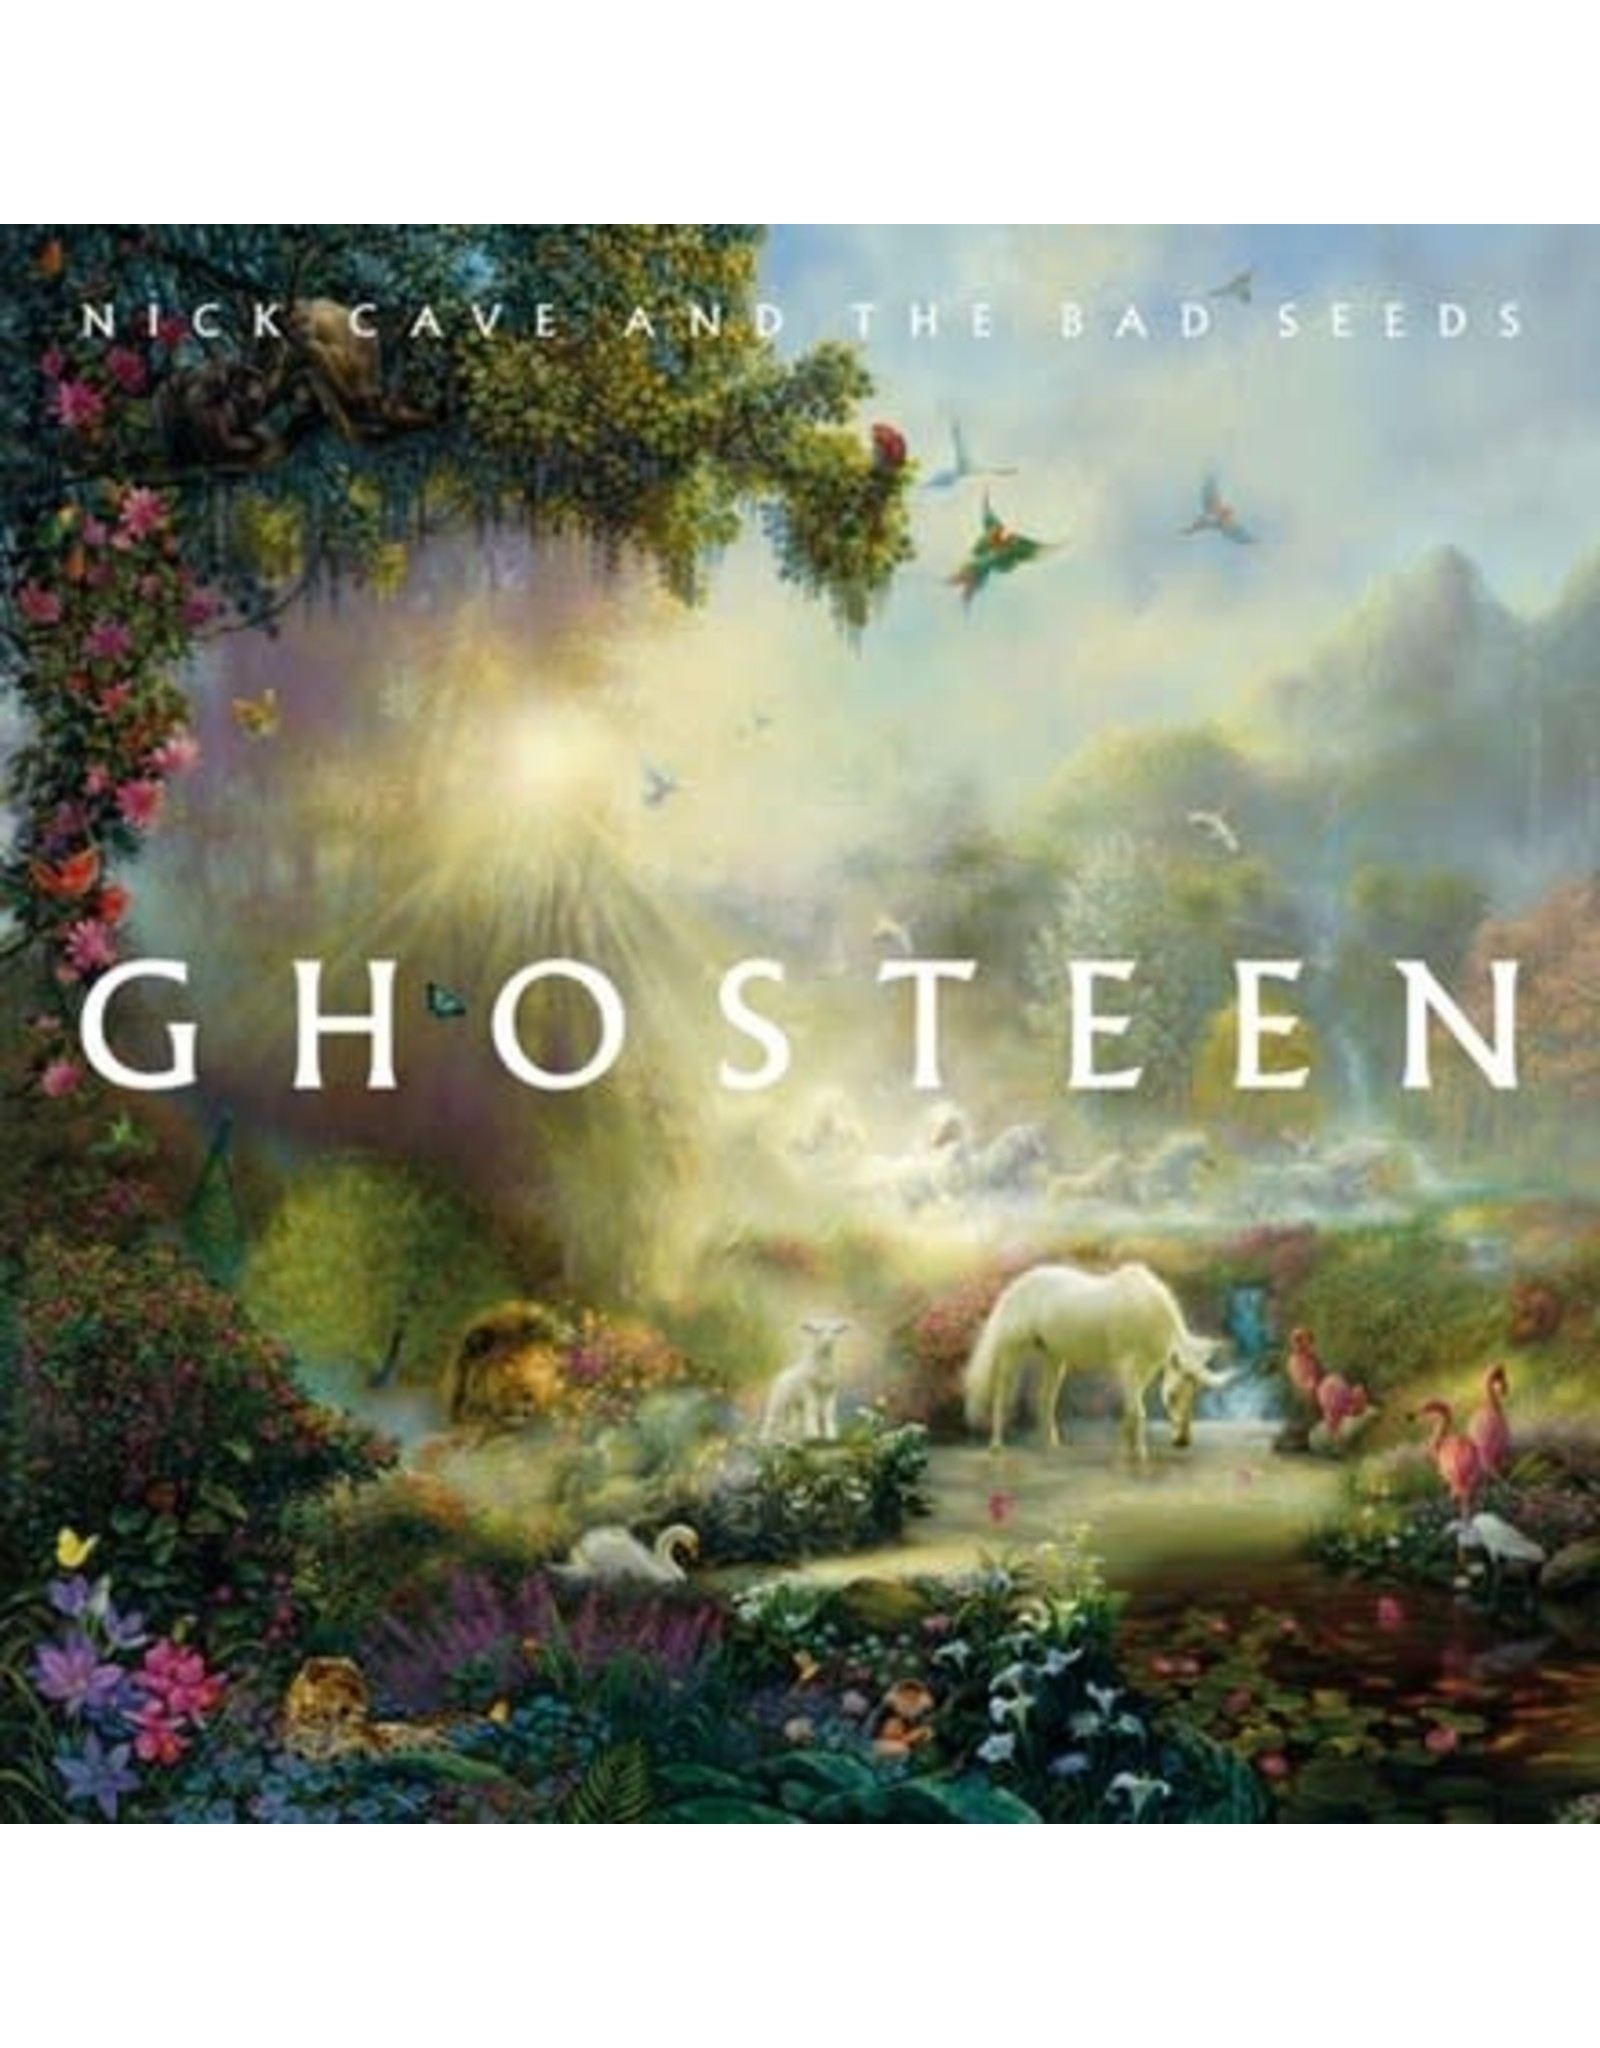 Bad Seed LTD. Cave, Nick & The Bad Seeds: Ghosteen LP